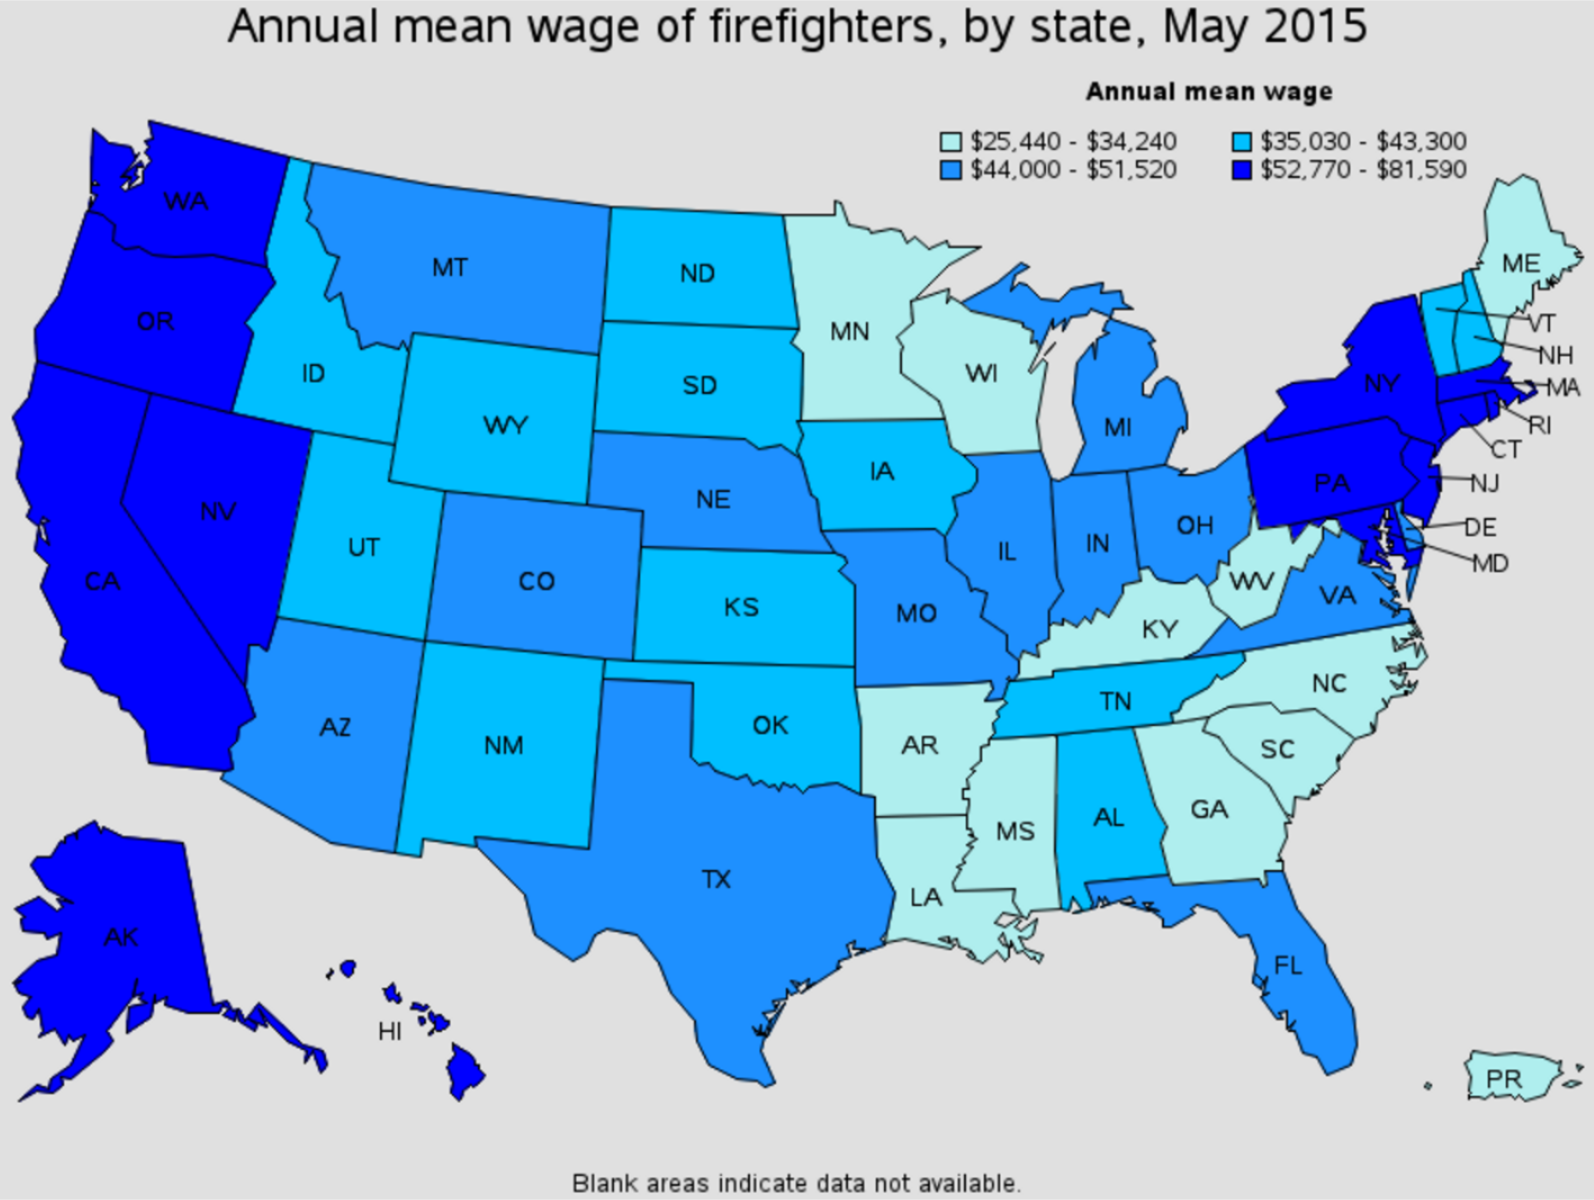 firefighter average salary by state Lancaster California